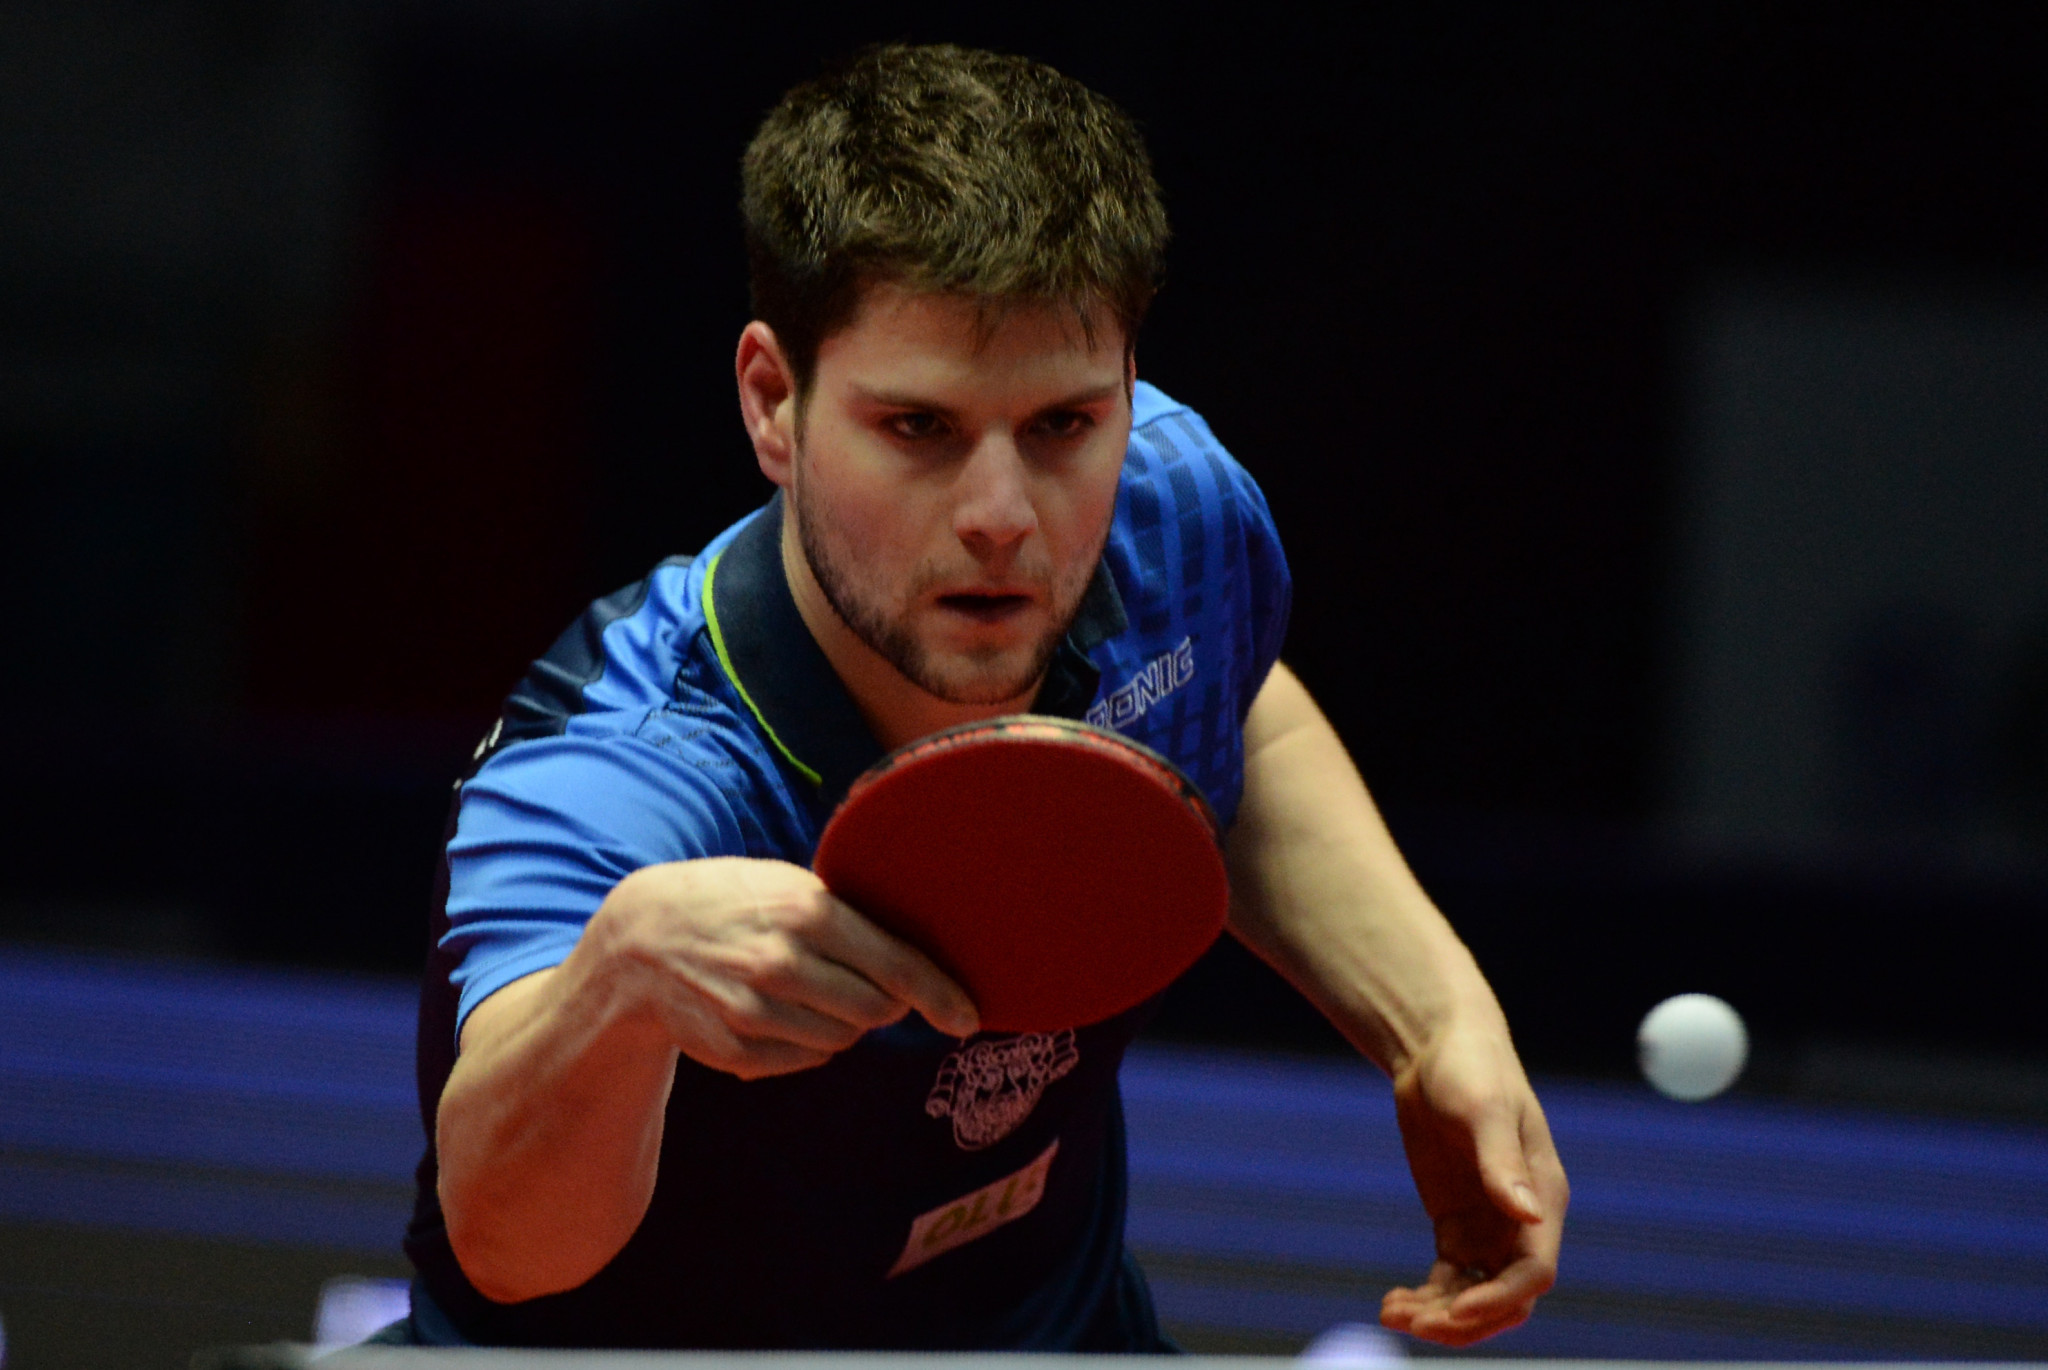 Major table tennis events are included as part of the deal ©Getty Images